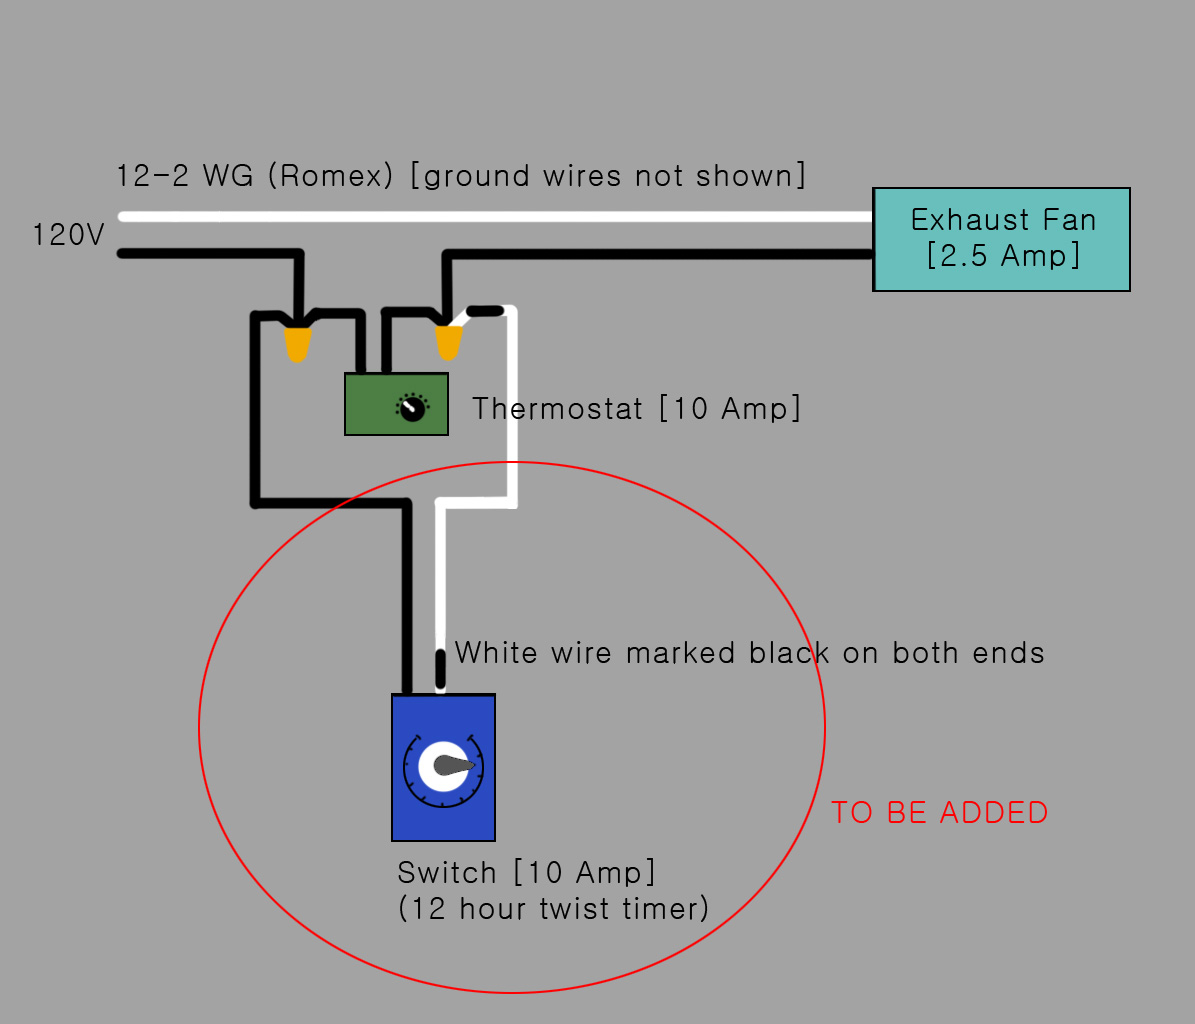 Attic Wiring Diagram Unlimited Access To Information Reversing 12 Volt Rocker Switch Free Download Smashing Fan Rmostat Rh K1sa Wisemamablog Com Tools